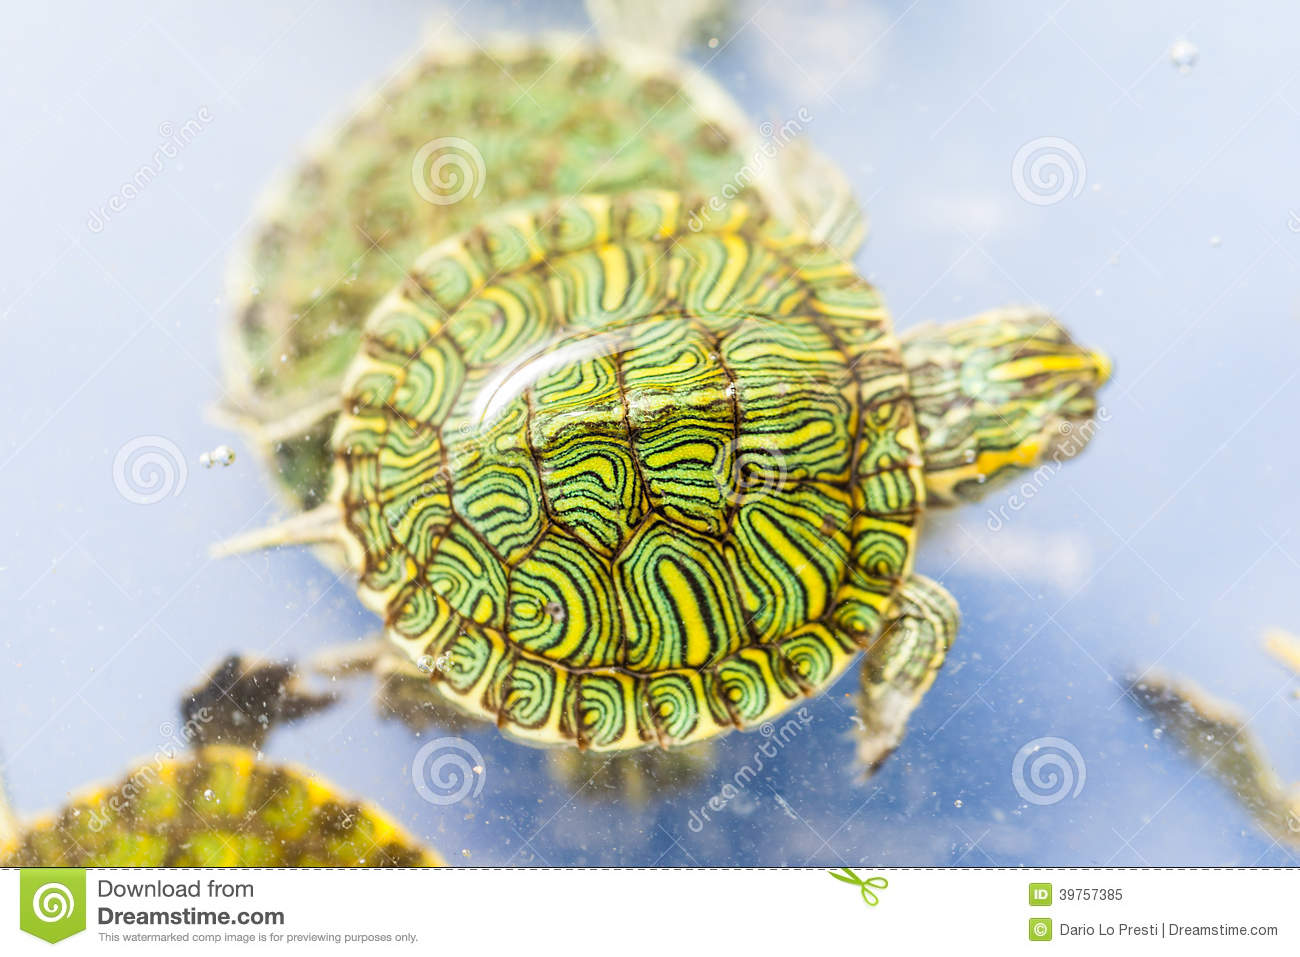 Pet turtle stock image. Image of above, armor, shell ...